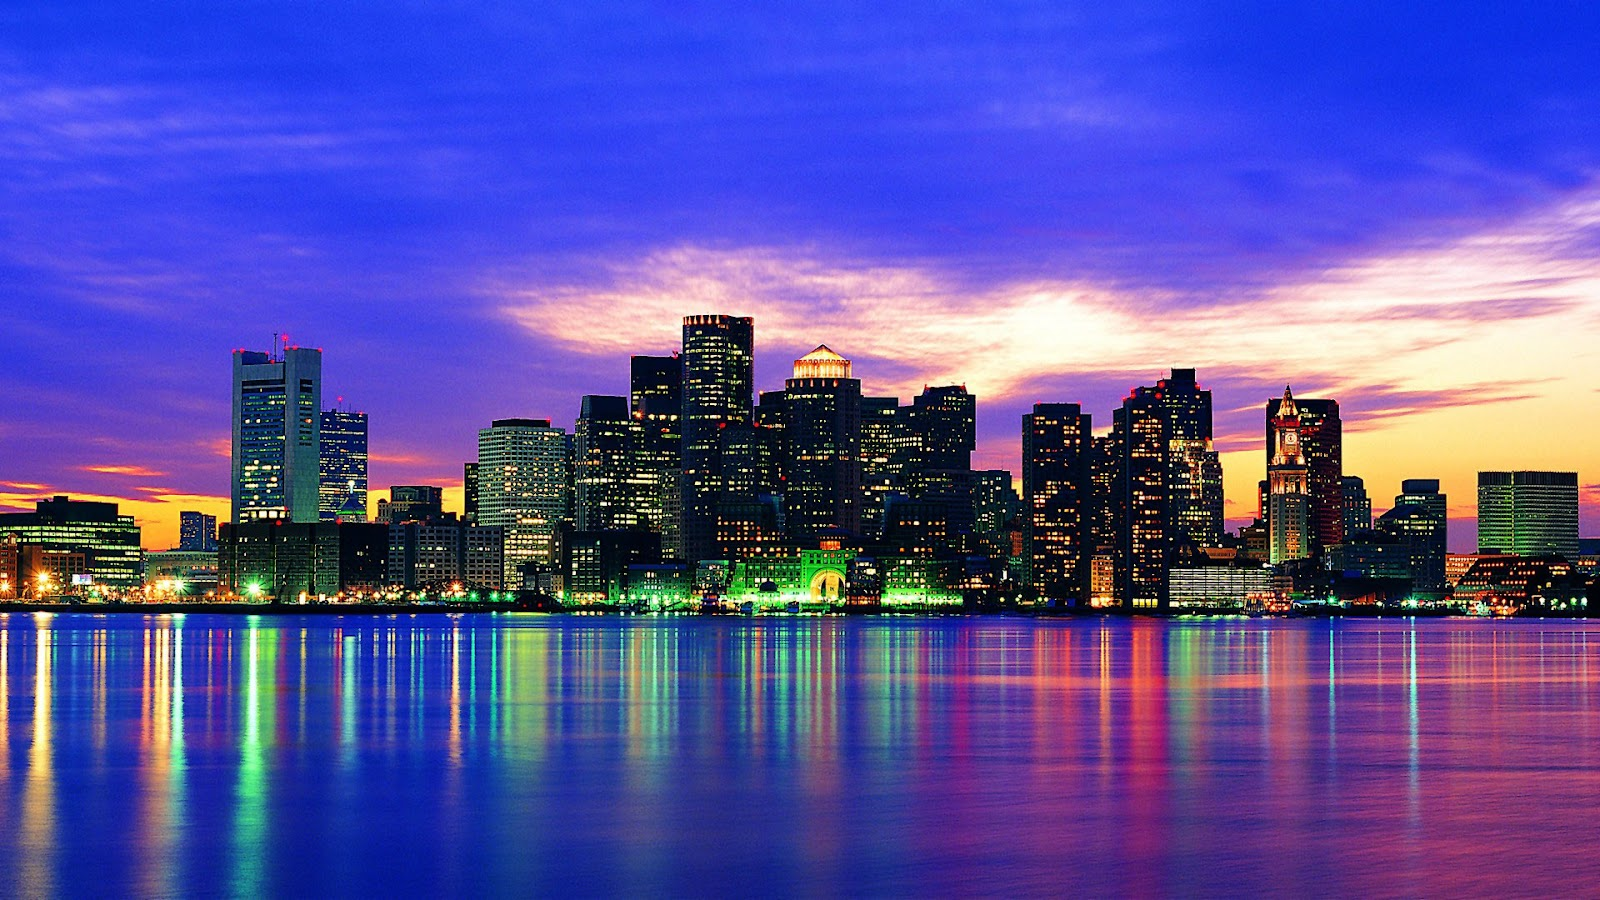 New-York-City-Skyline-at-Night-Wallpaper.jpg